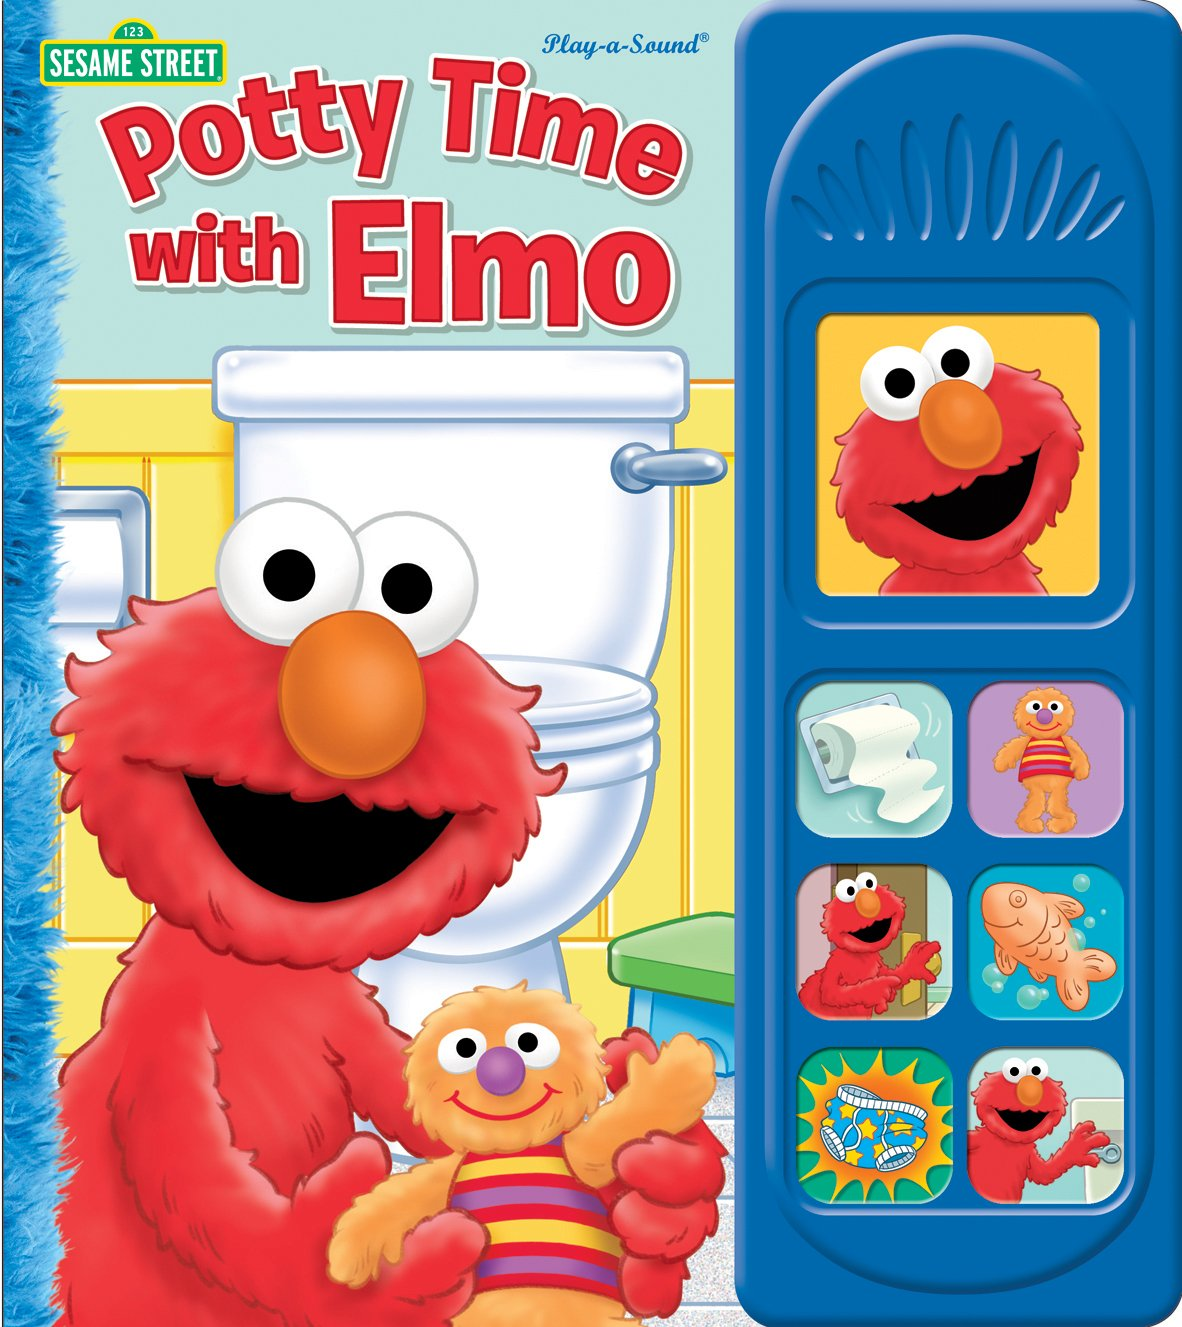 Sesame street potty time with elmo 1 2 3 sesame street editors of publications international 9781450813532 amazon com books